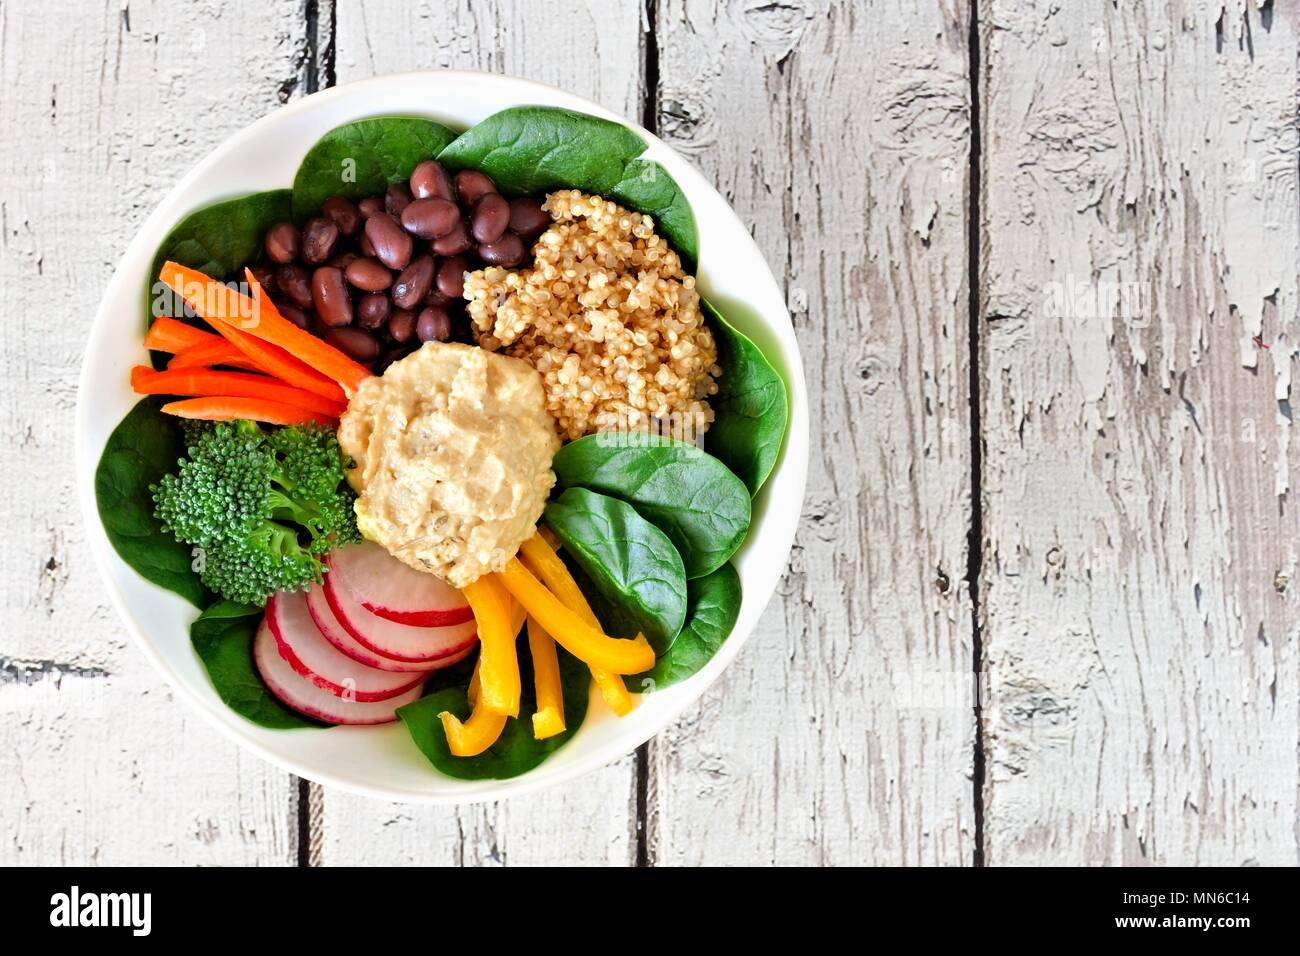 Nourishment lunch bowl with quinoa, hummus and mixed vegetables, above view on rustic white wood - Stock Image